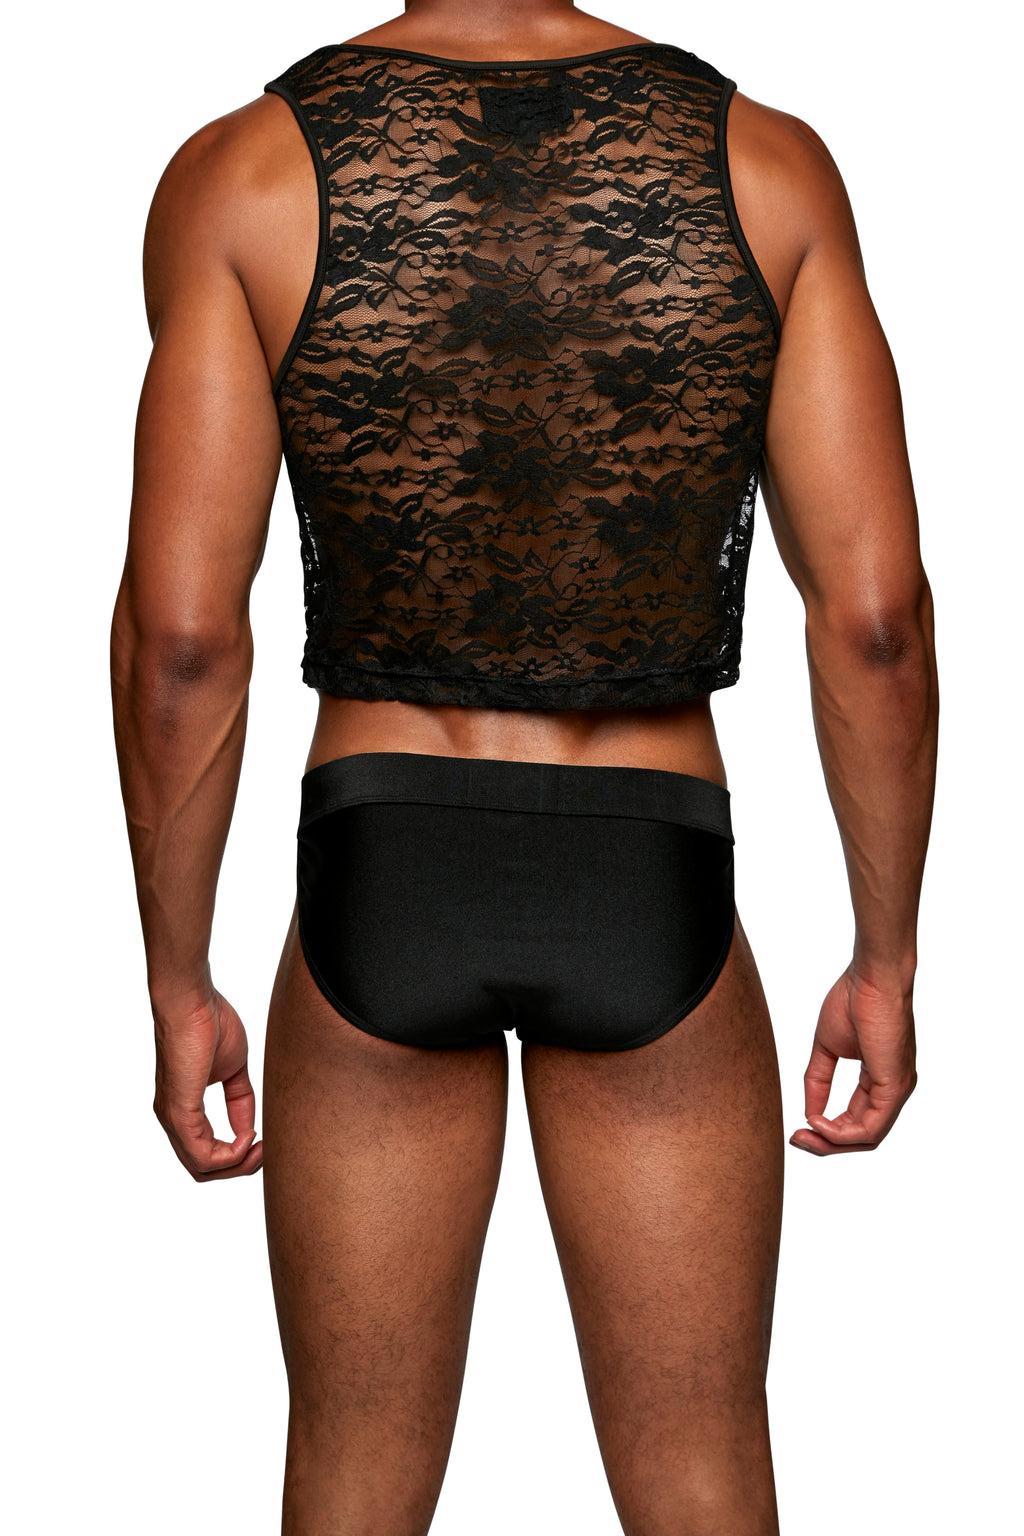 CROPPED TANK in LACE - MENAGERIE Intimates MENS Lingerie